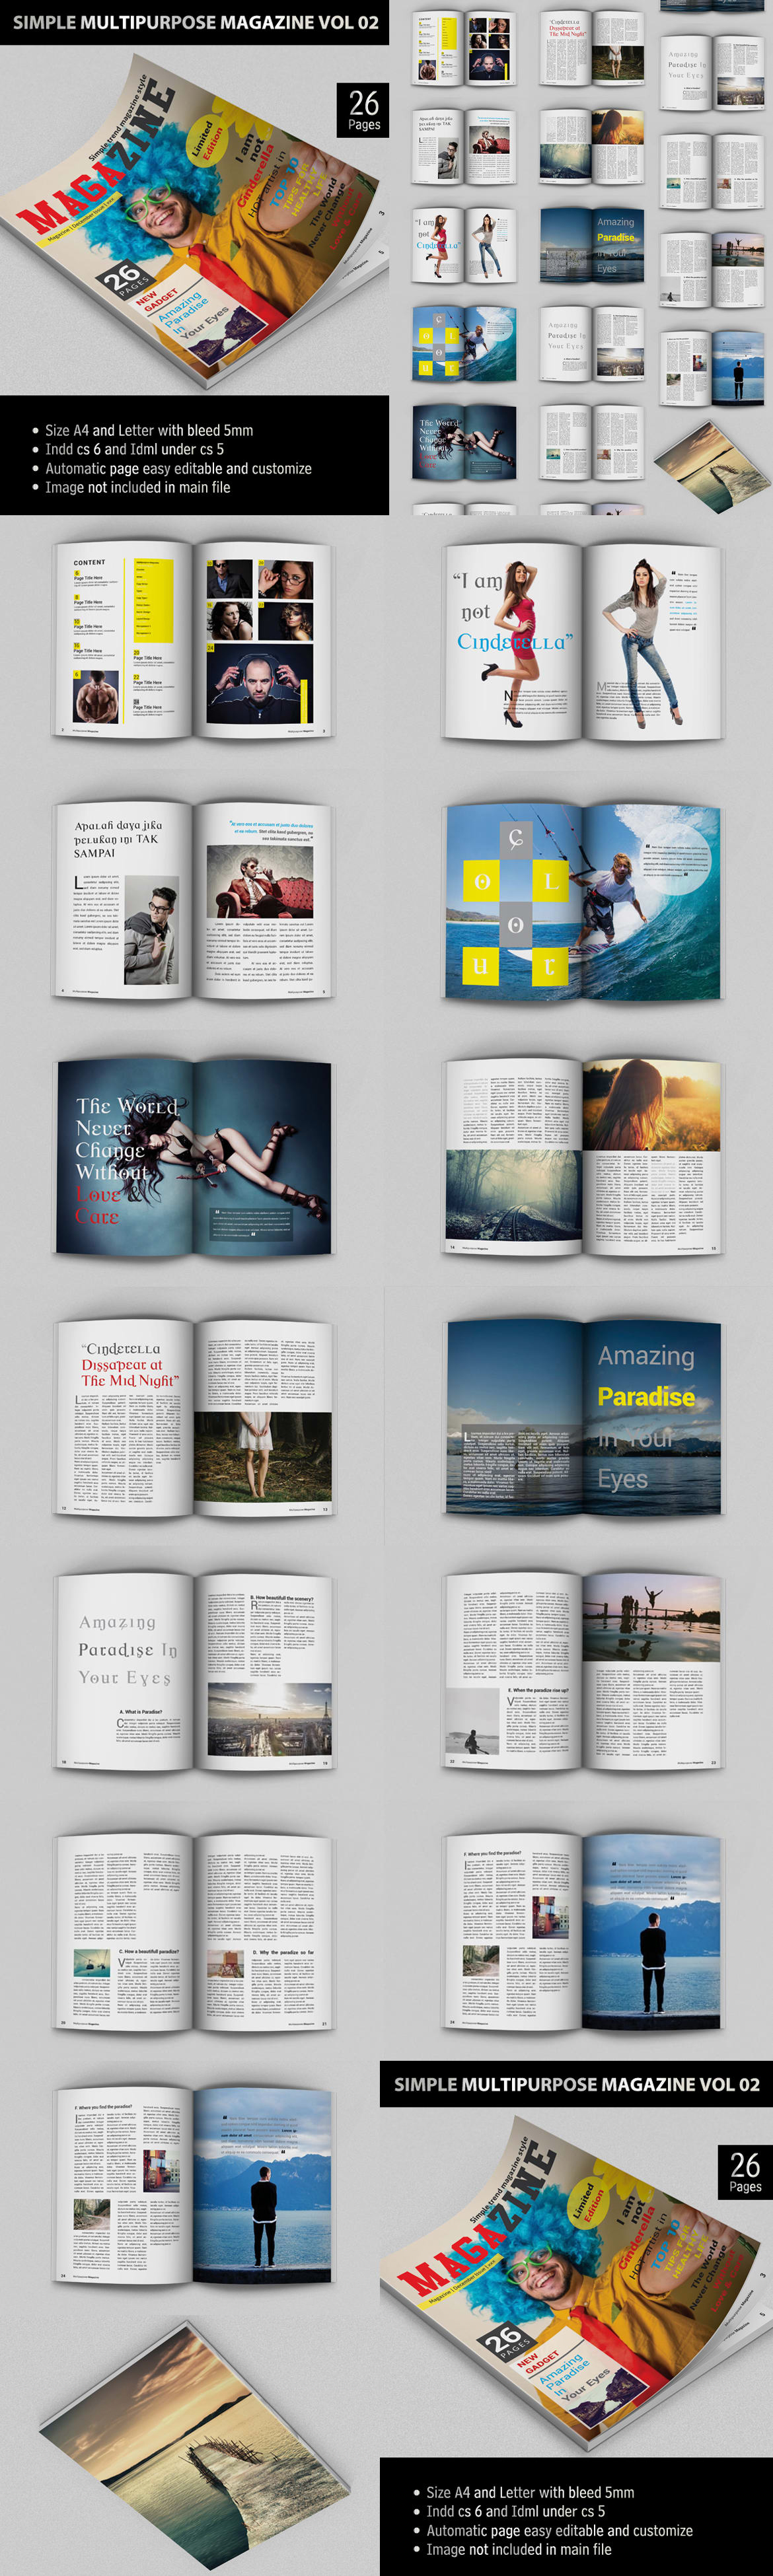 Simple Multipurpose Magazine Template Indesign Indd 26 Pages A4